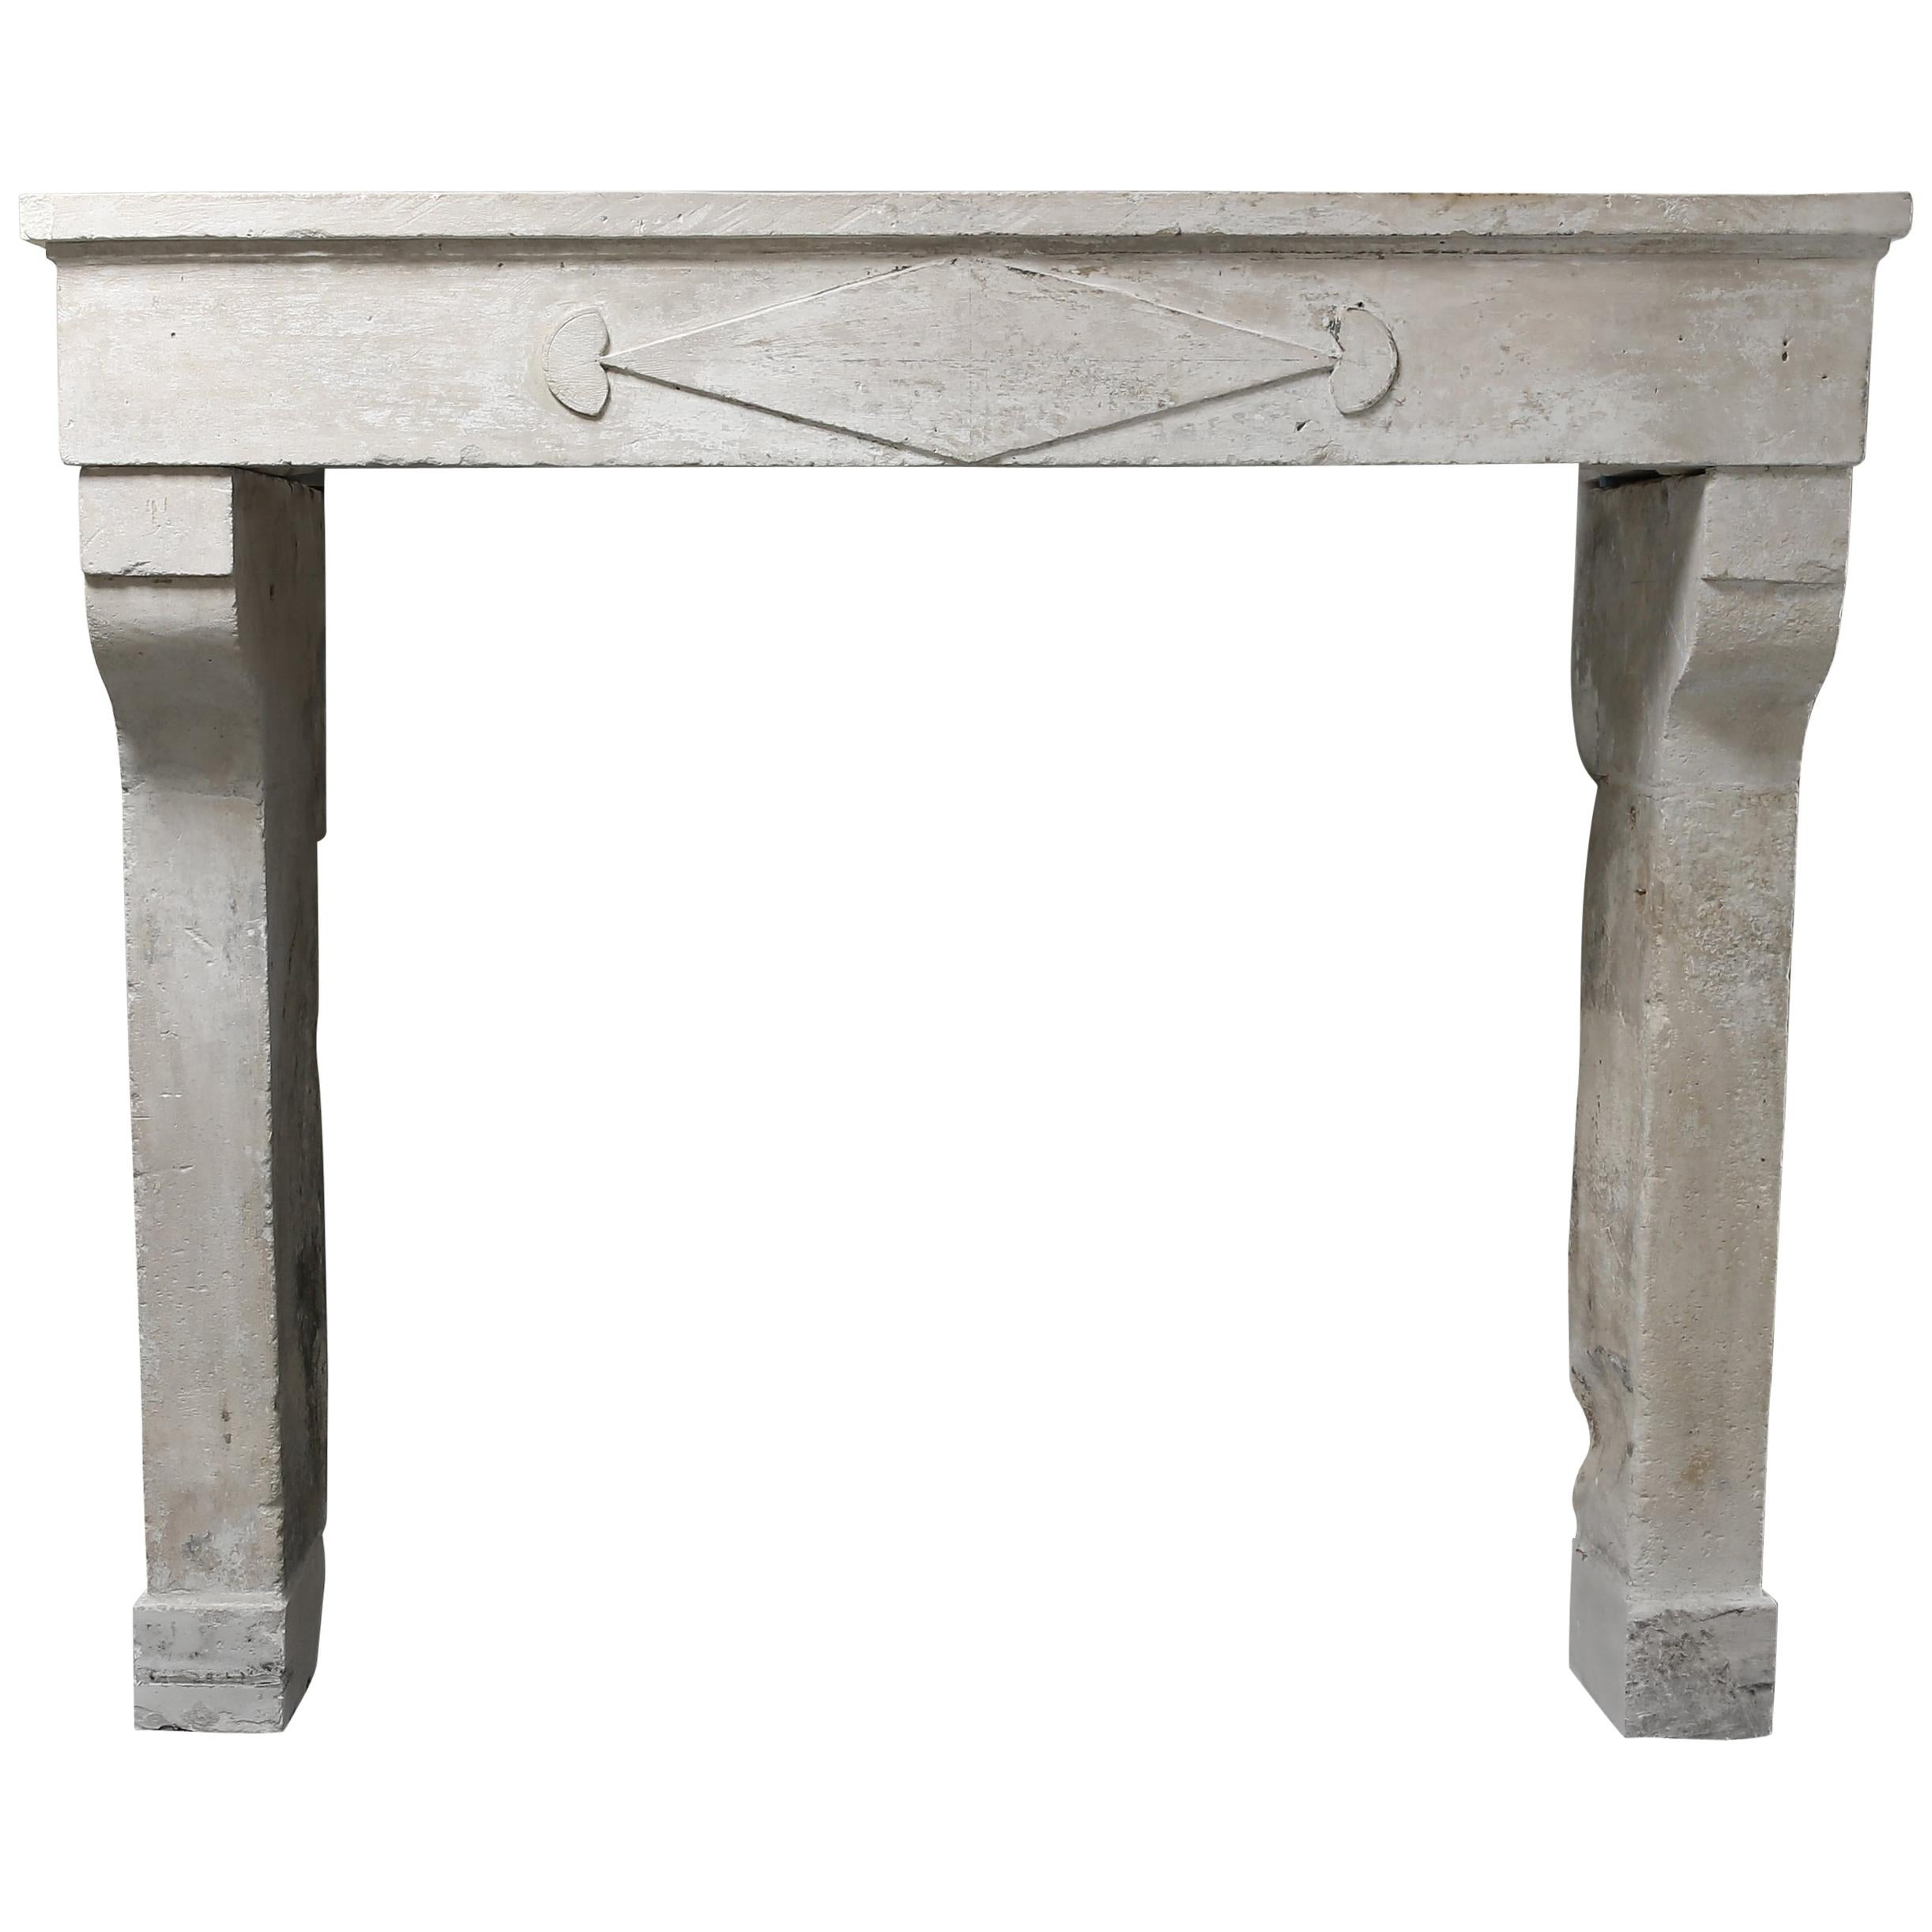 French Antique Fireplace of Limestone, 19th Century, Campagnarde